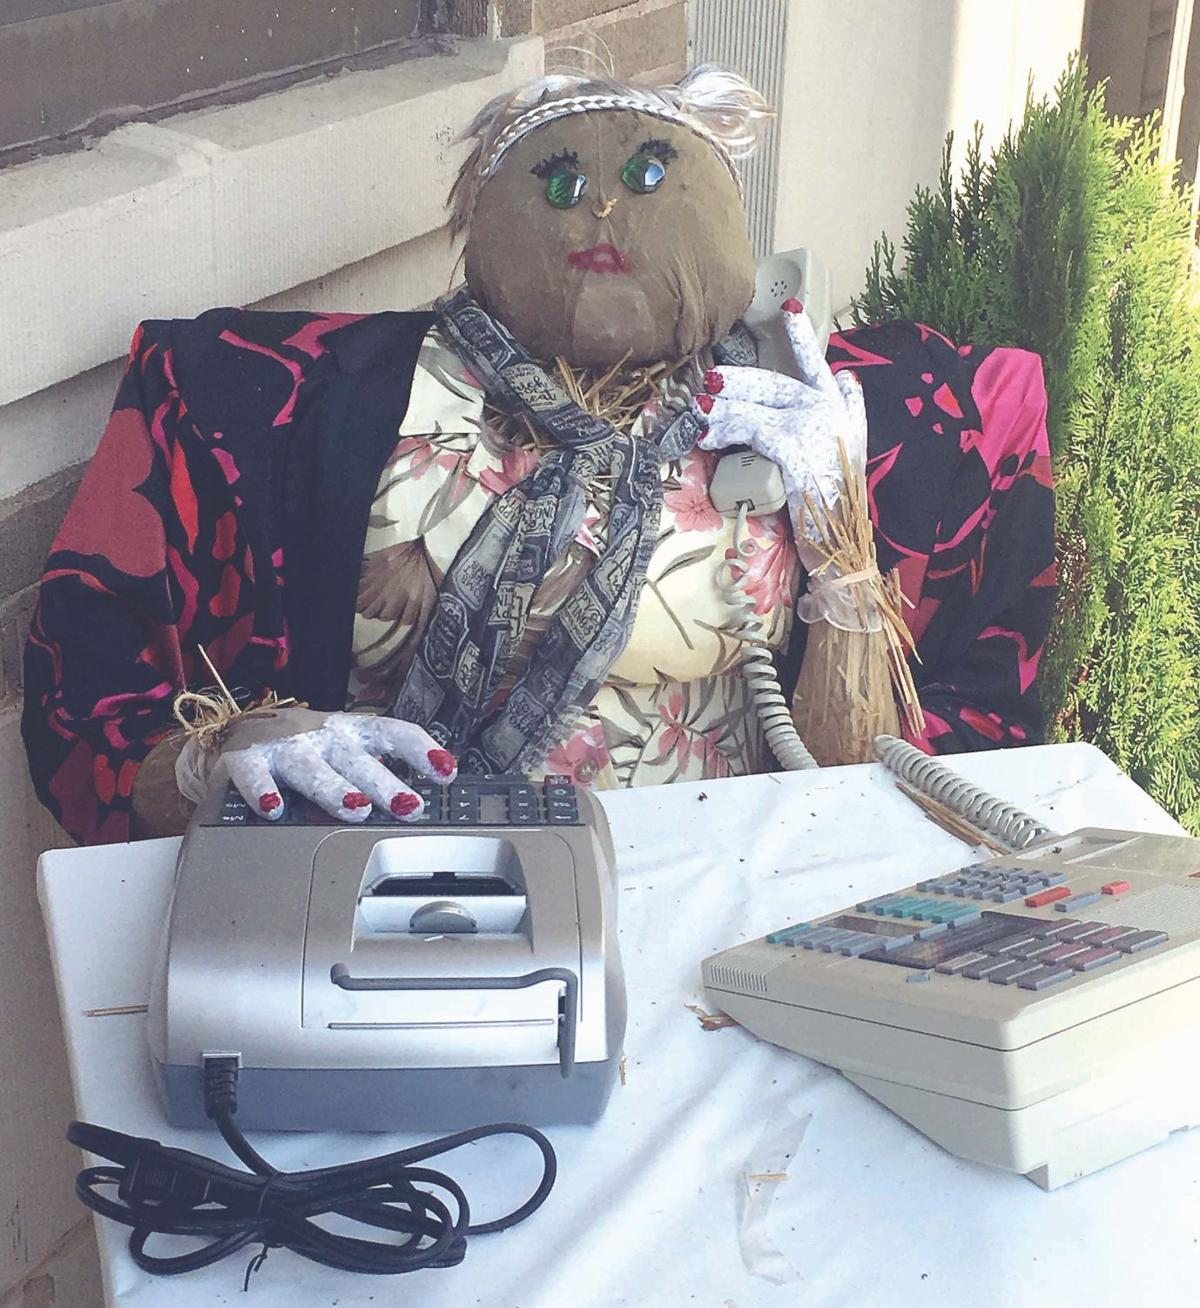 Halloween Wilkesboro Nc 2020 Halloween scarecrows are fundraiser to fight Alzheimer's | News